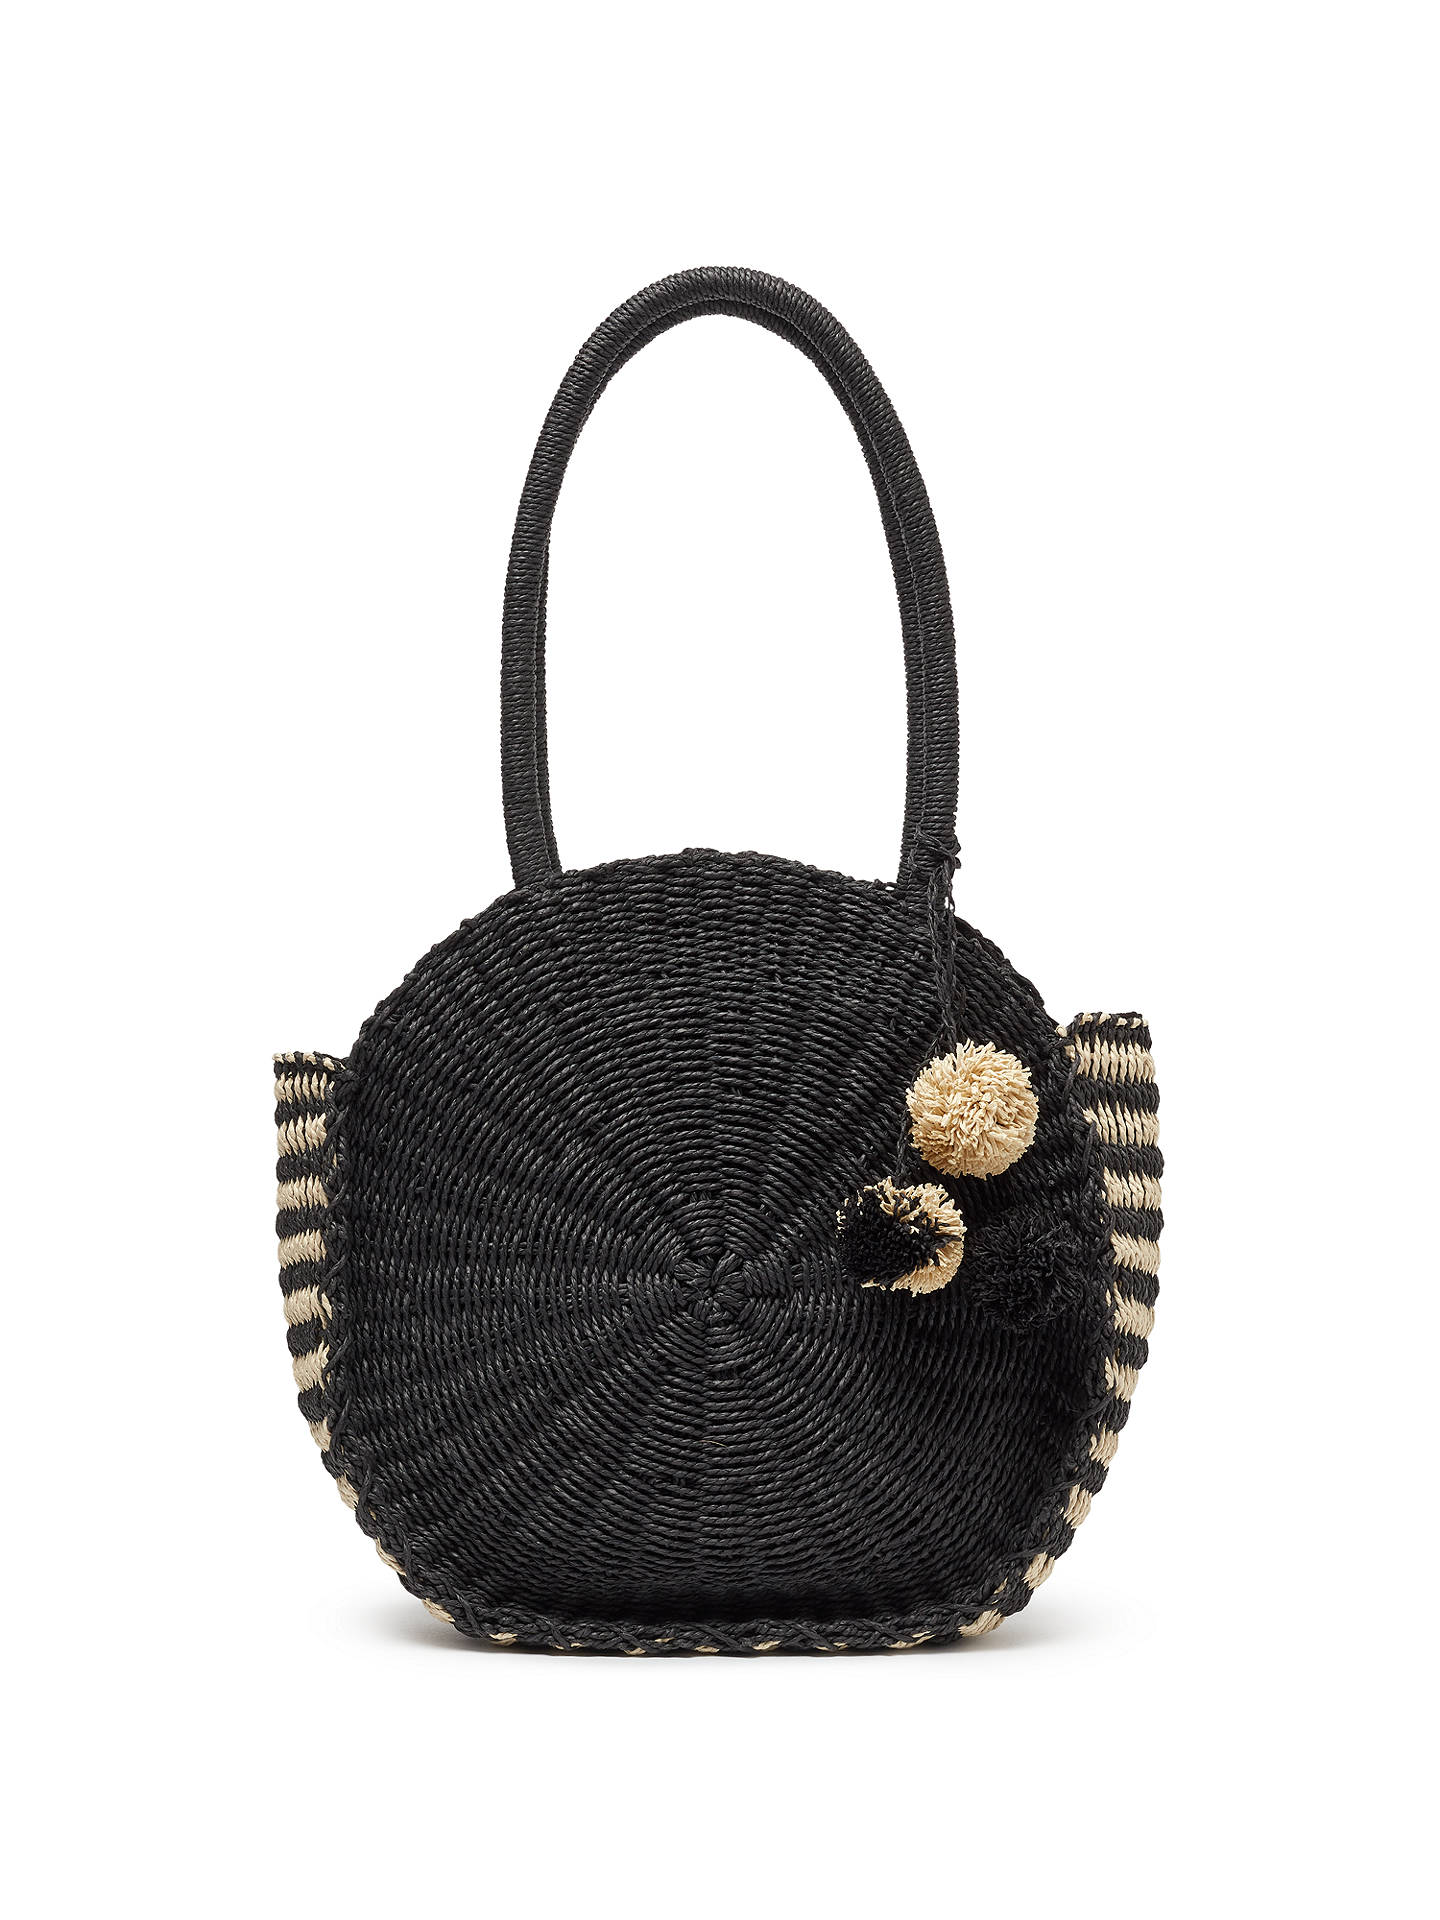 John Lewis Partners Straw Circle Grab Bag Black Cream Online At Johnlewis